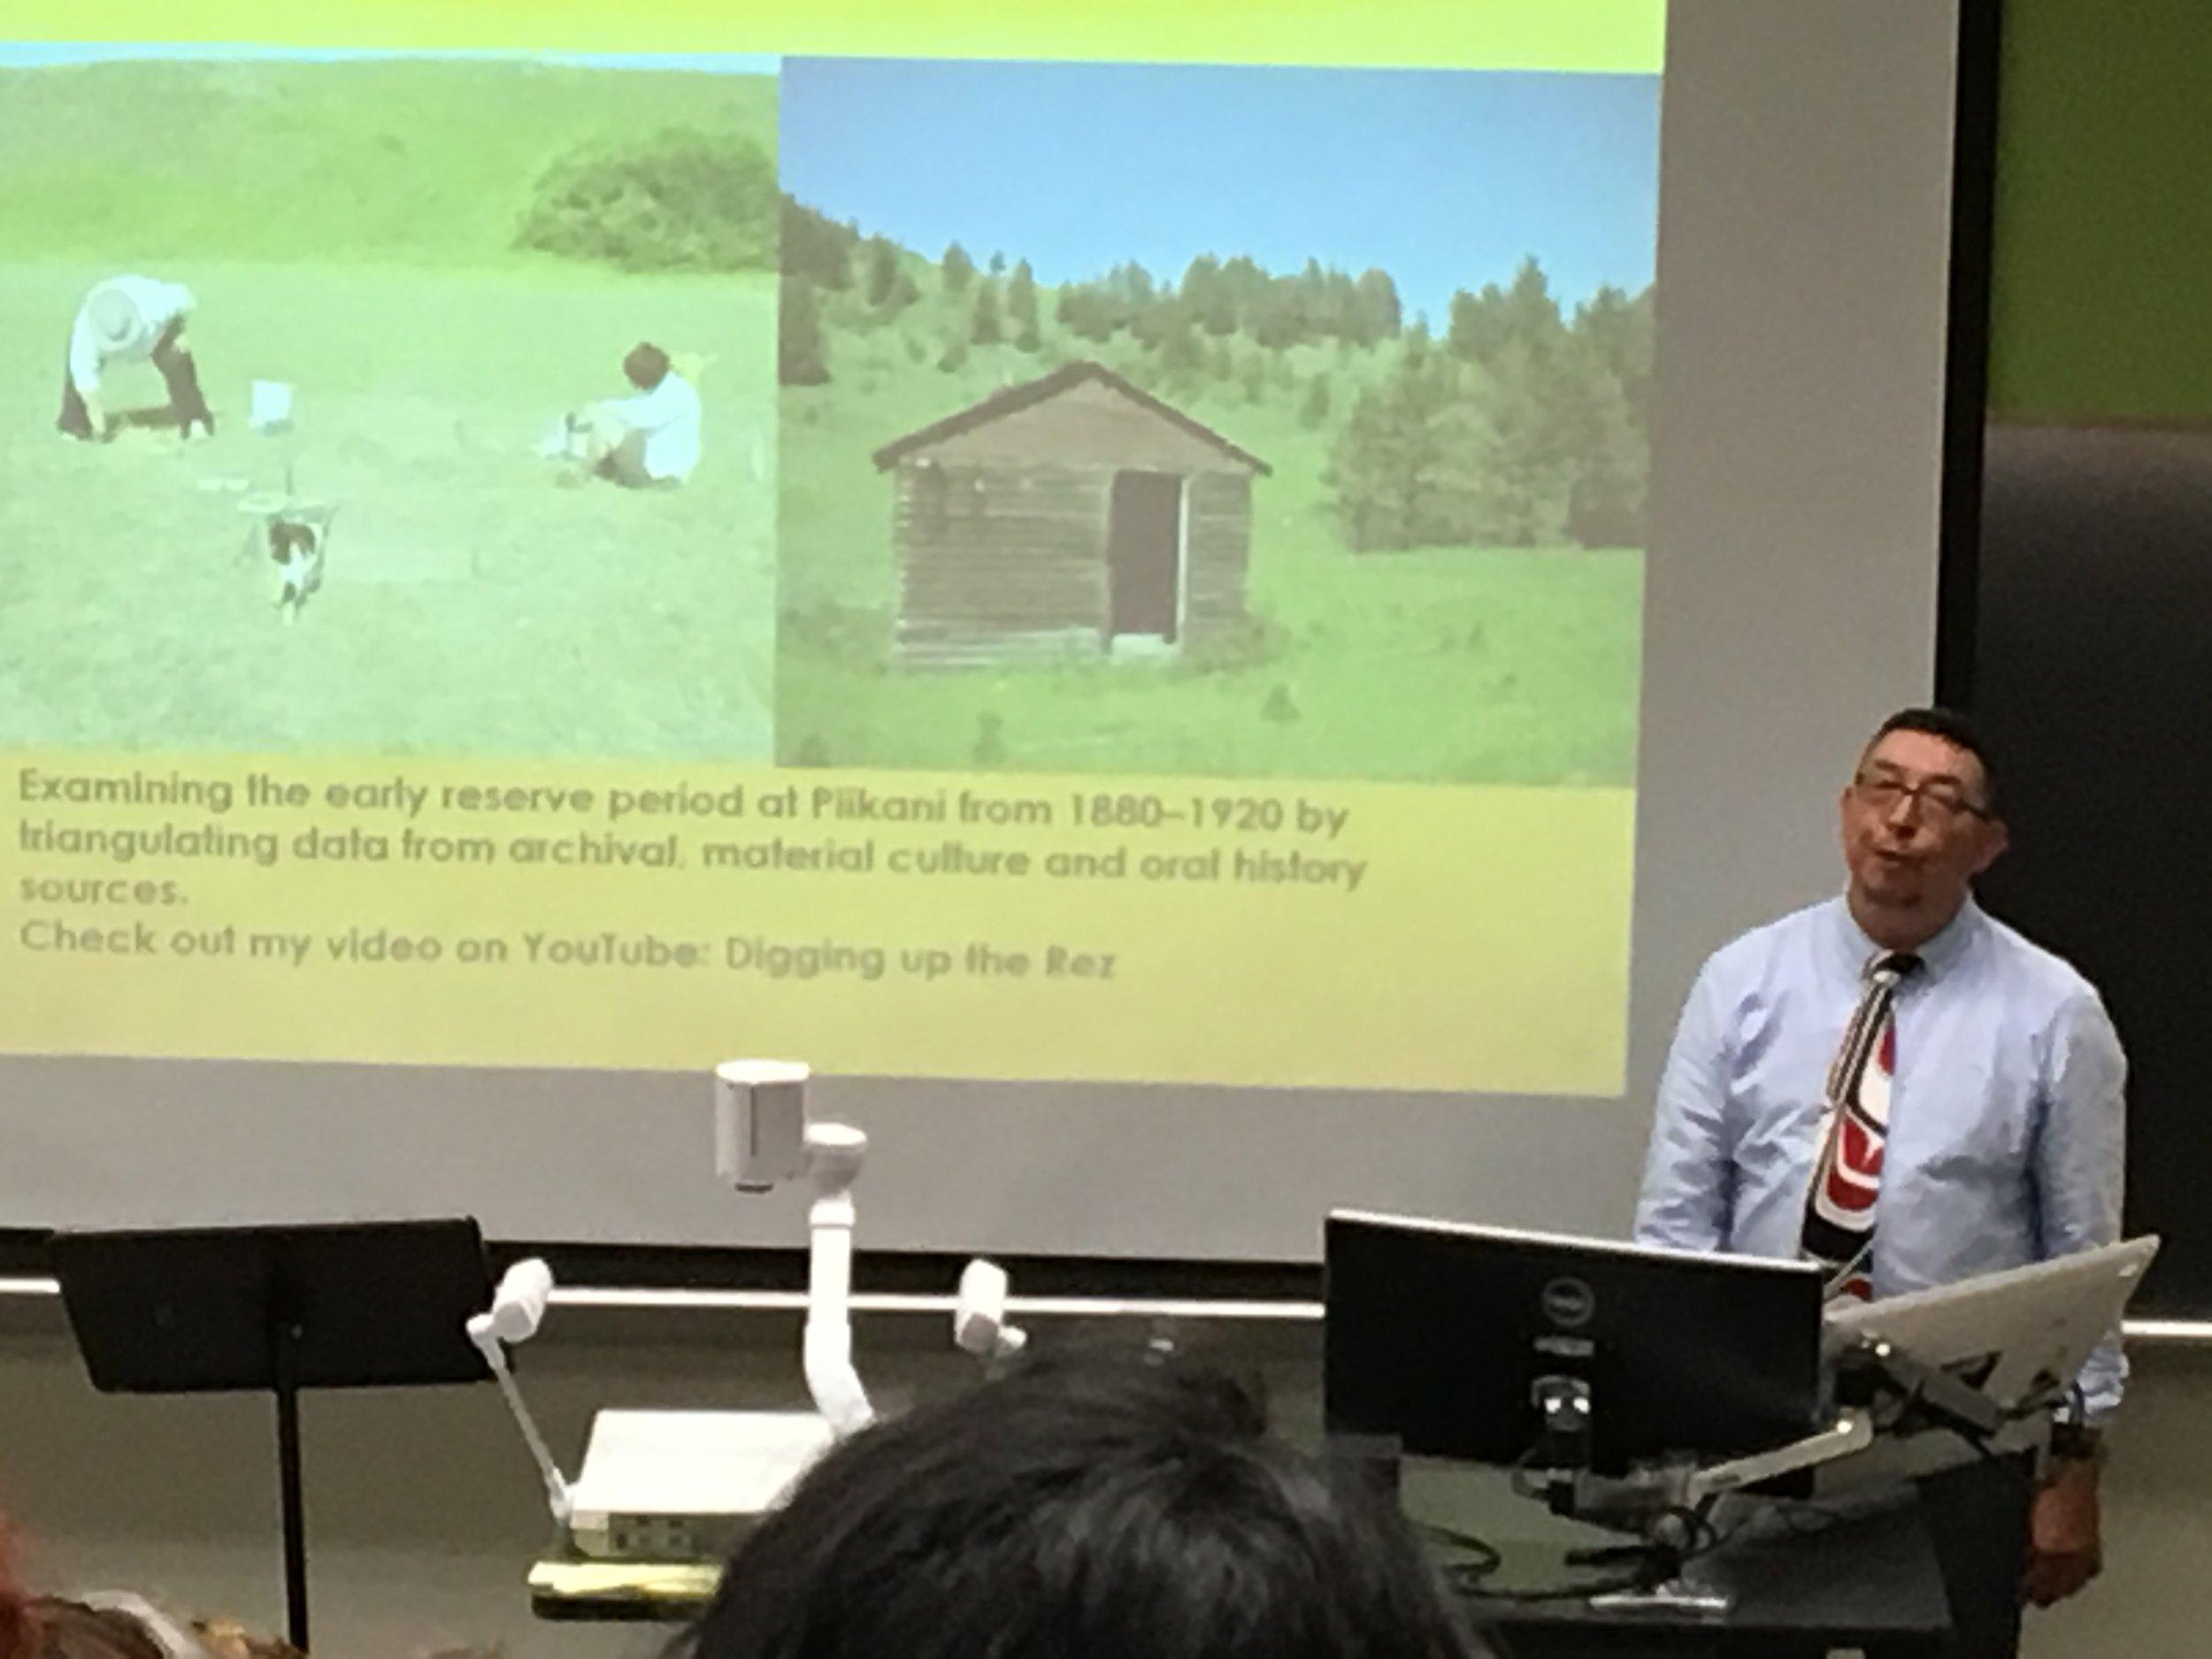 Eldon Yellowhorn delivers an engaging keynote talk on blackfoot oral narratives and the archaeological record of the northern plains